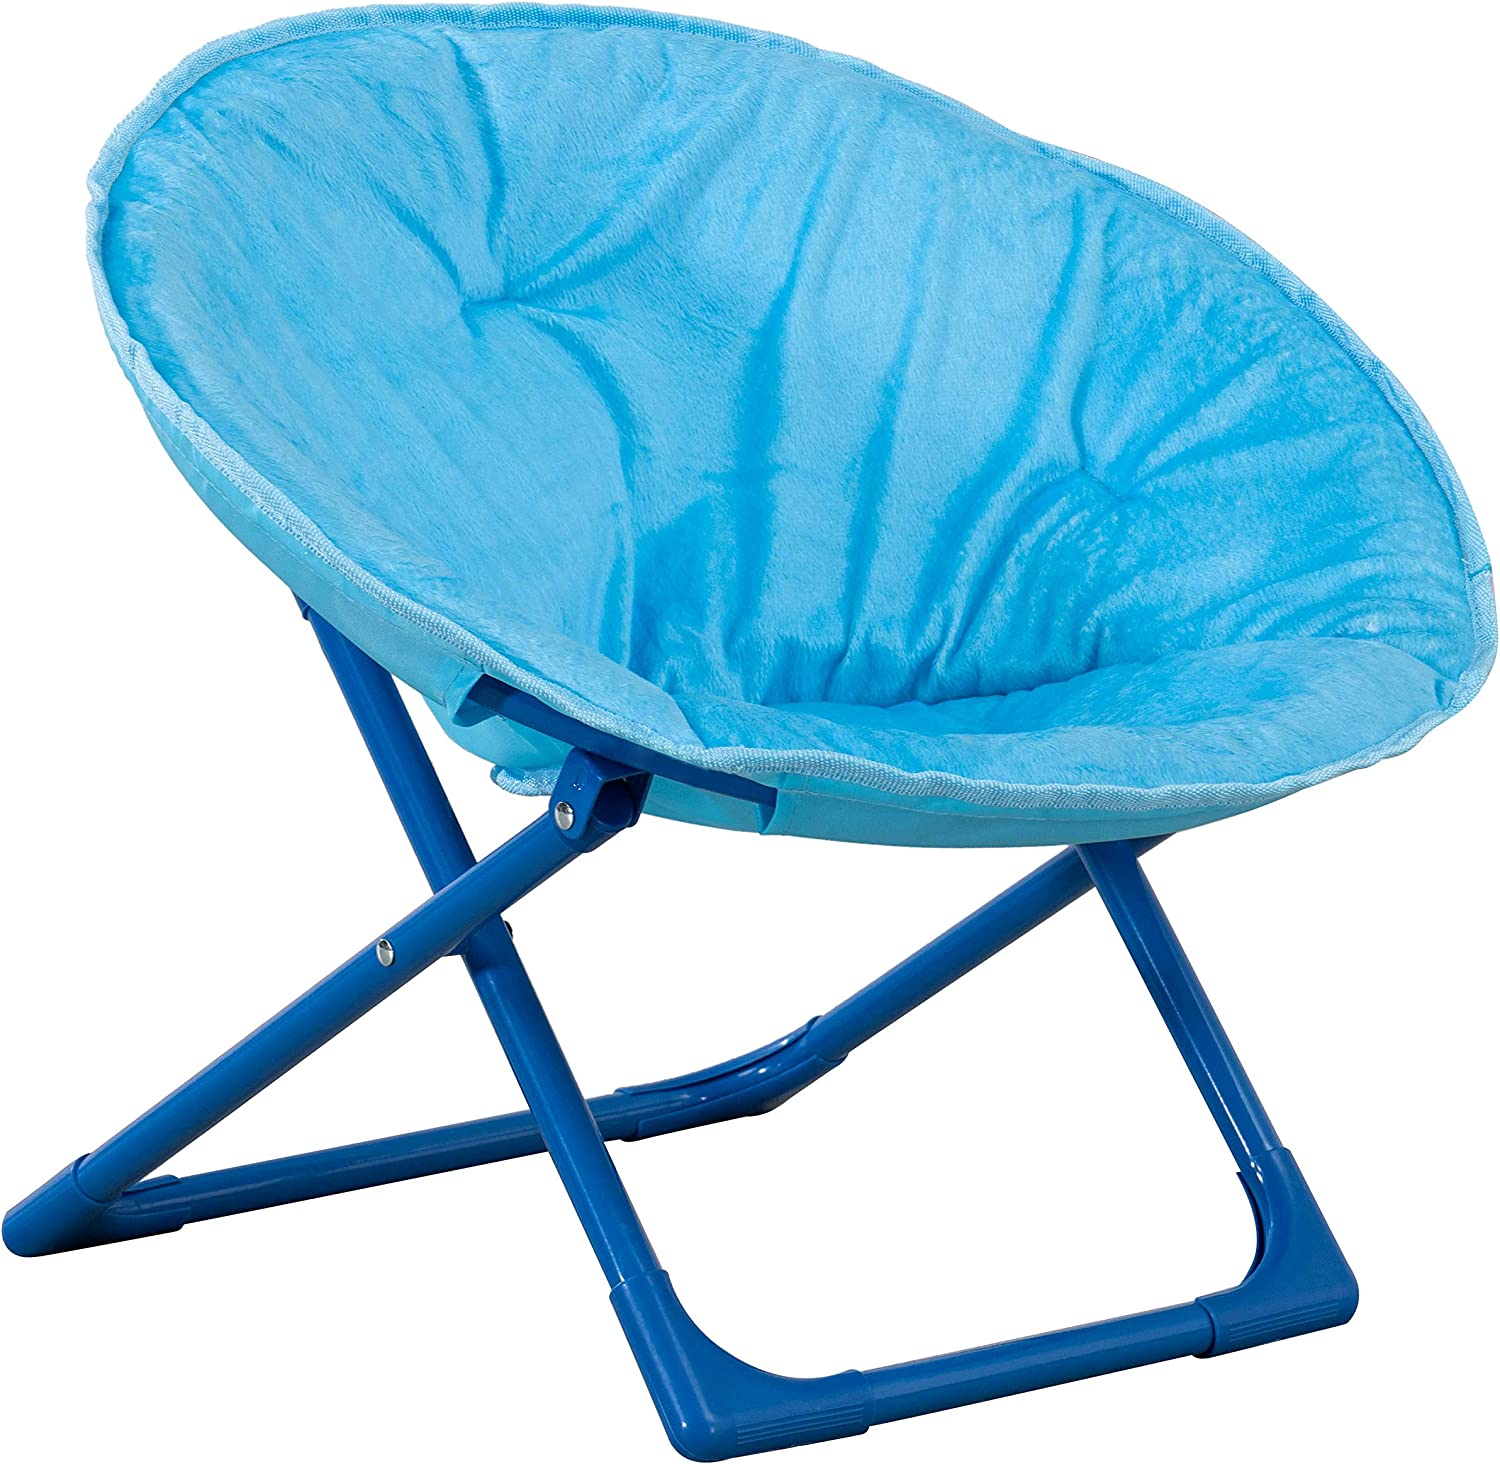 AmazonBasics Kids Folding Moon Indoor Papasan Chair for Children - Solid Blue